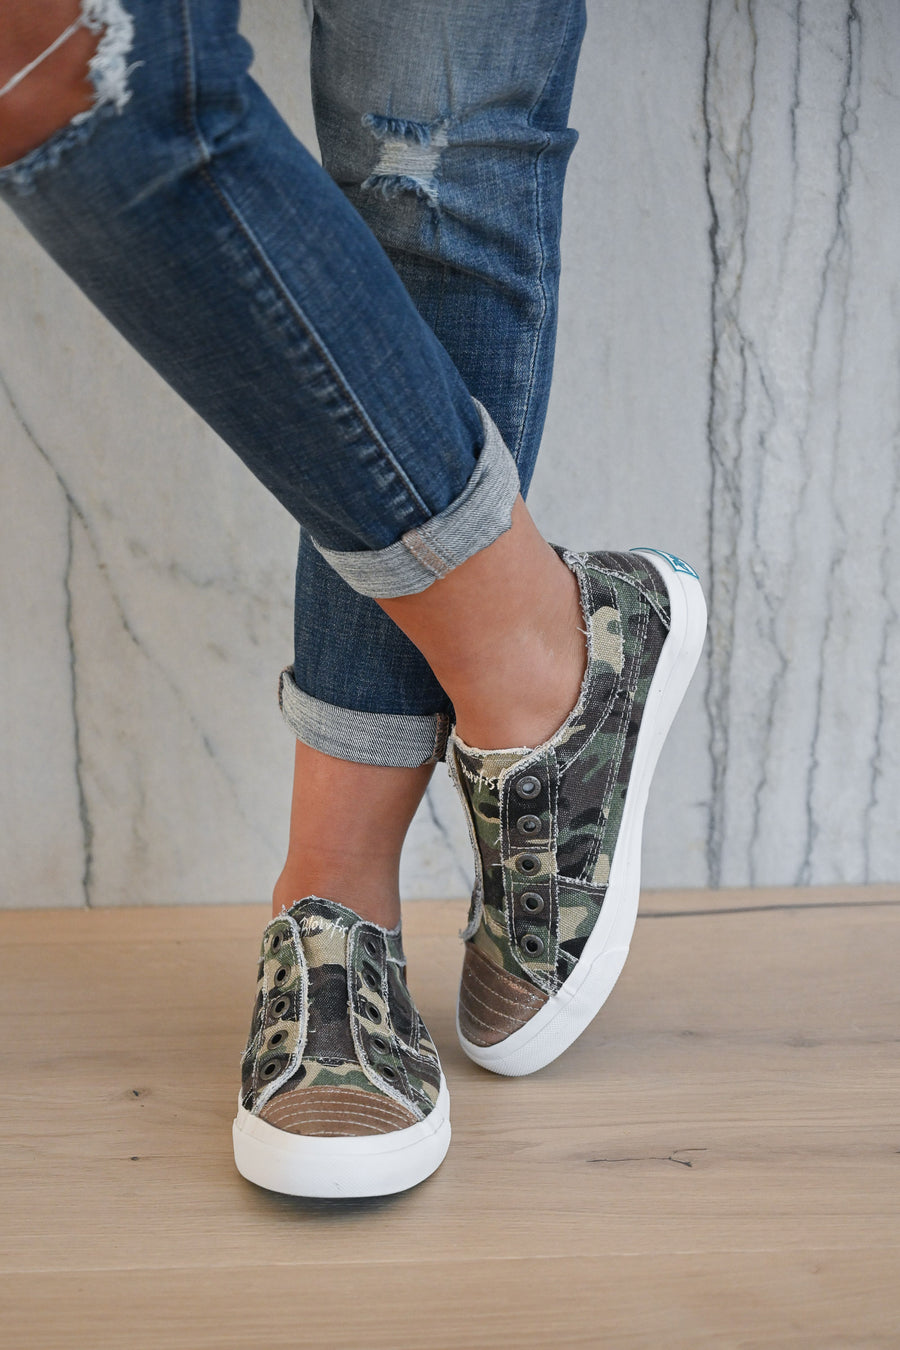 Wherever You Wander Sneakers - Camo & Metallic toe casual sneakers, Closet Candy Boutique 1